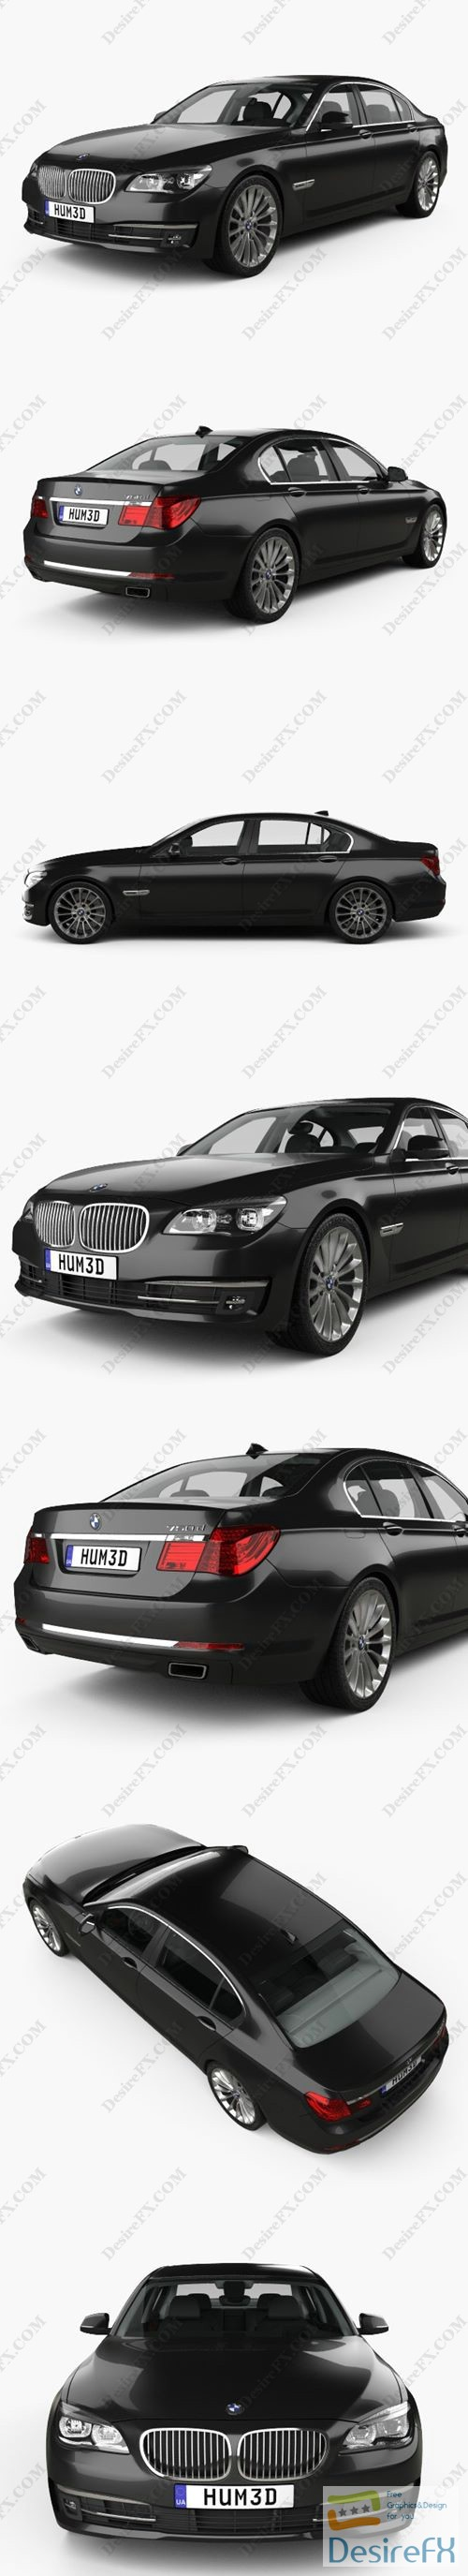 3d-models - BMW 7-series F02 with HQ interior 2013 3D Model